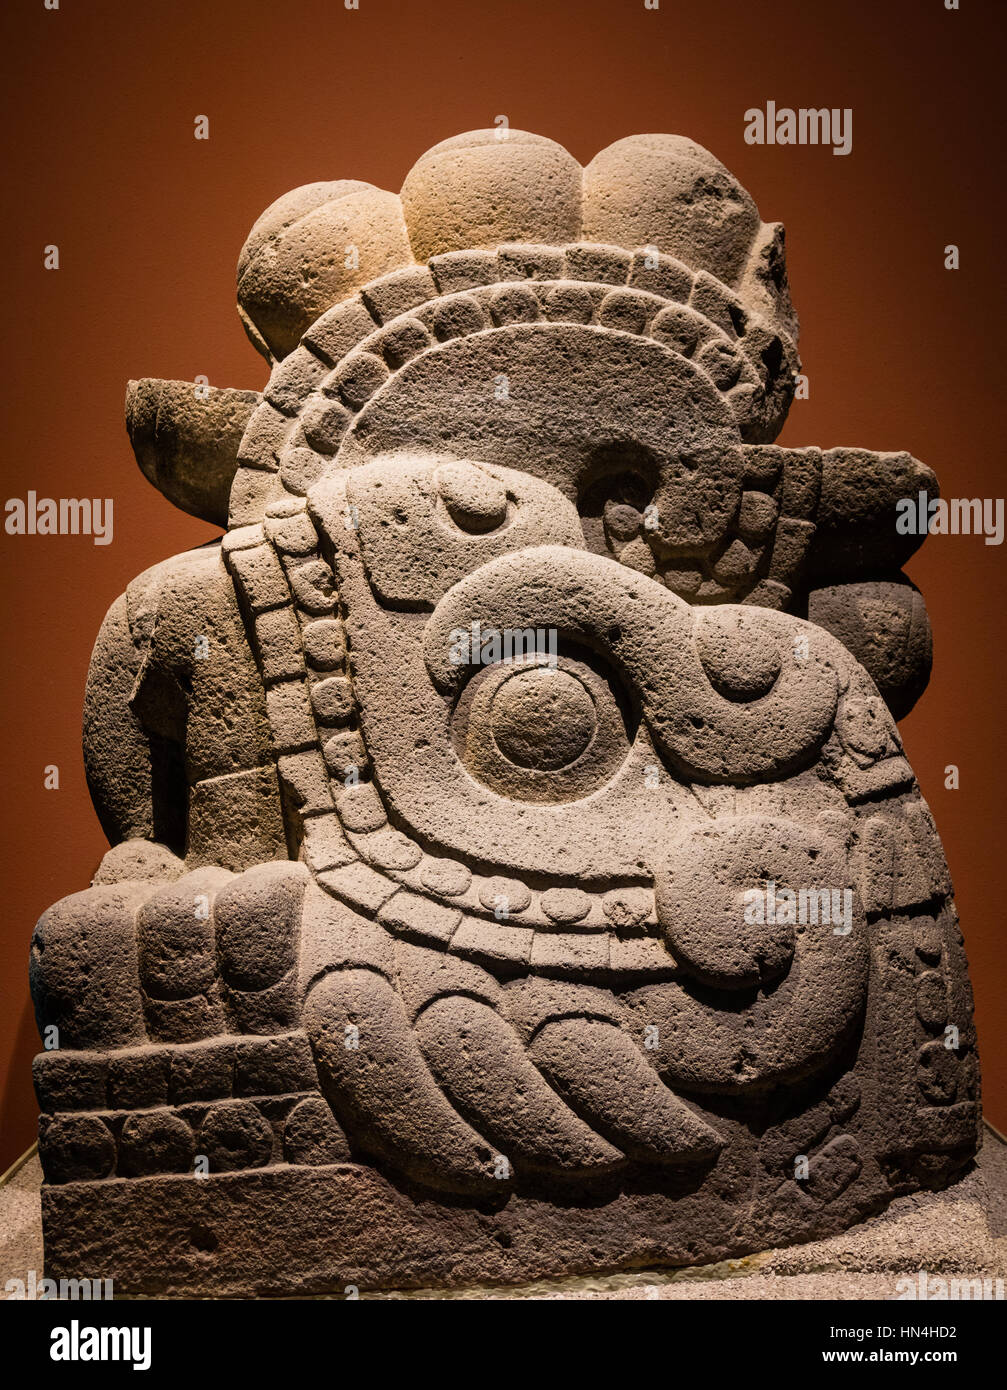 The National Museum of Anthropology (Spanish: Museo Nacional de Antropología, MNA) is a national museum of - Stock Image